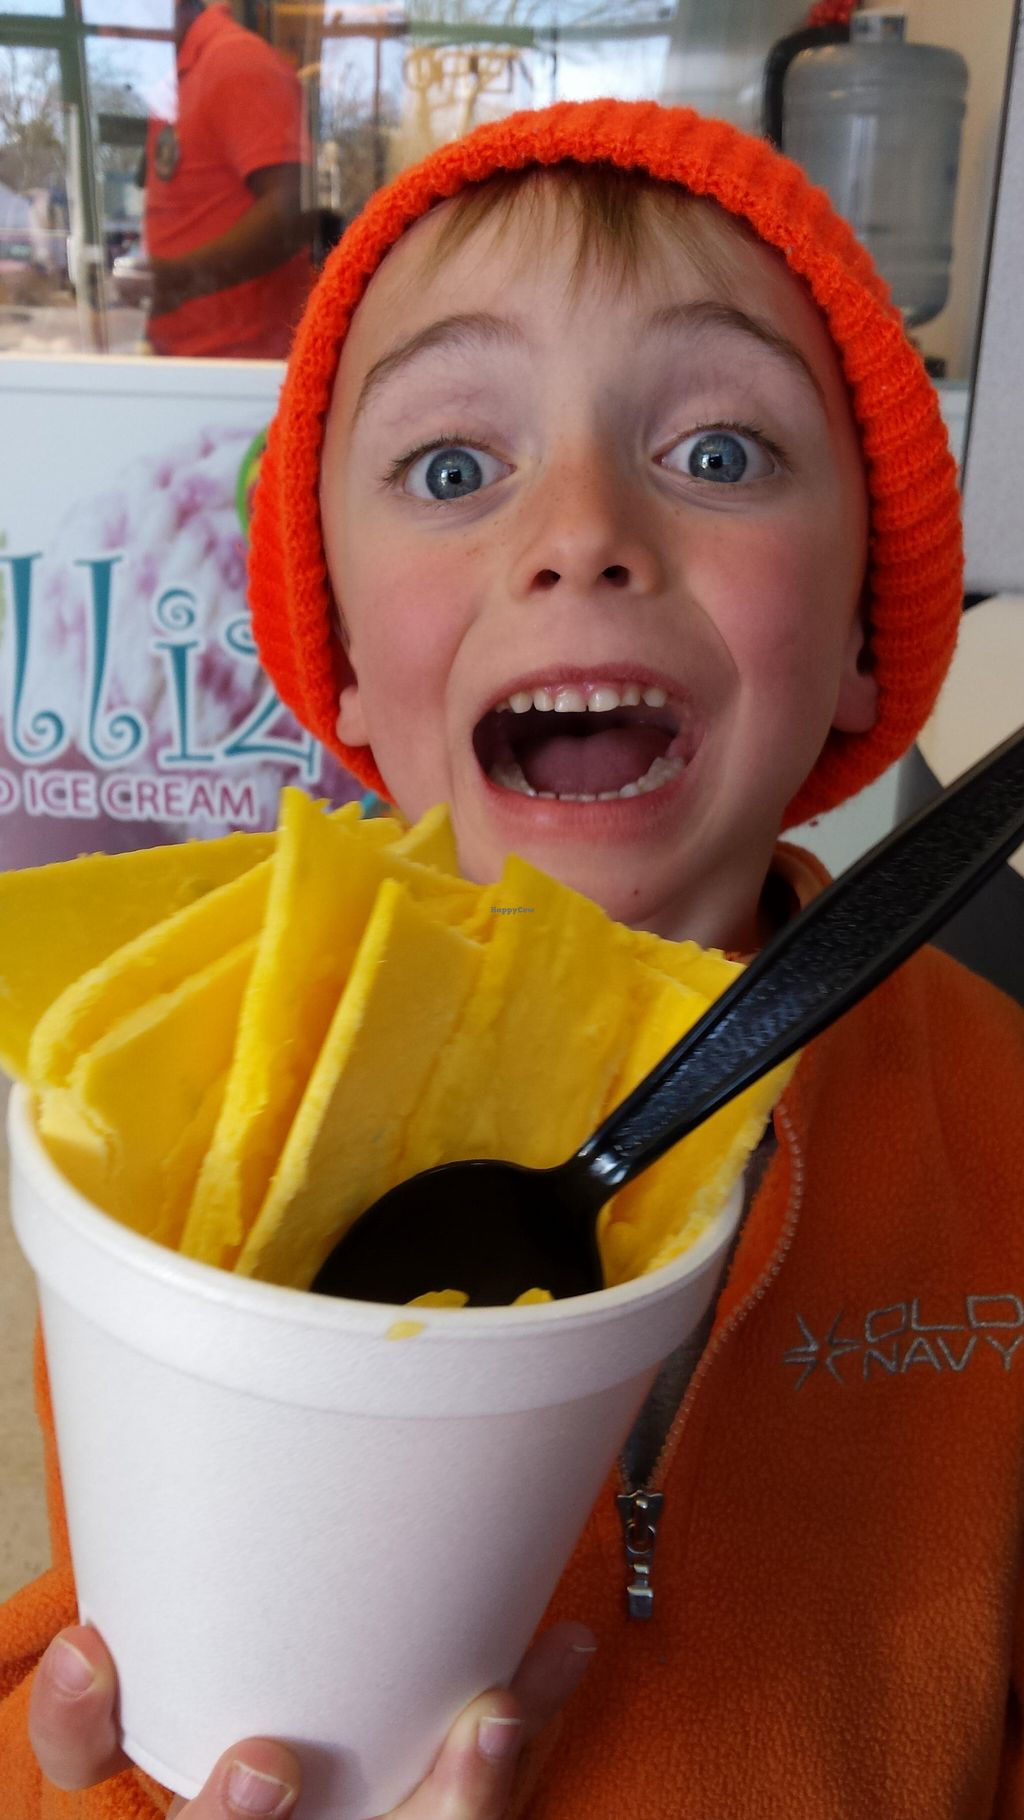 """Photo of Rolliz Fried Ice Cream  by <a href=""""/members/profile/American%20Vegan"""">American Vegan</a> <br/>Clint loves the vegan mango ice cream <br/> May 22, 2016  - <a href='/contact/abuse/image/74032/150399'>Report</a>"""